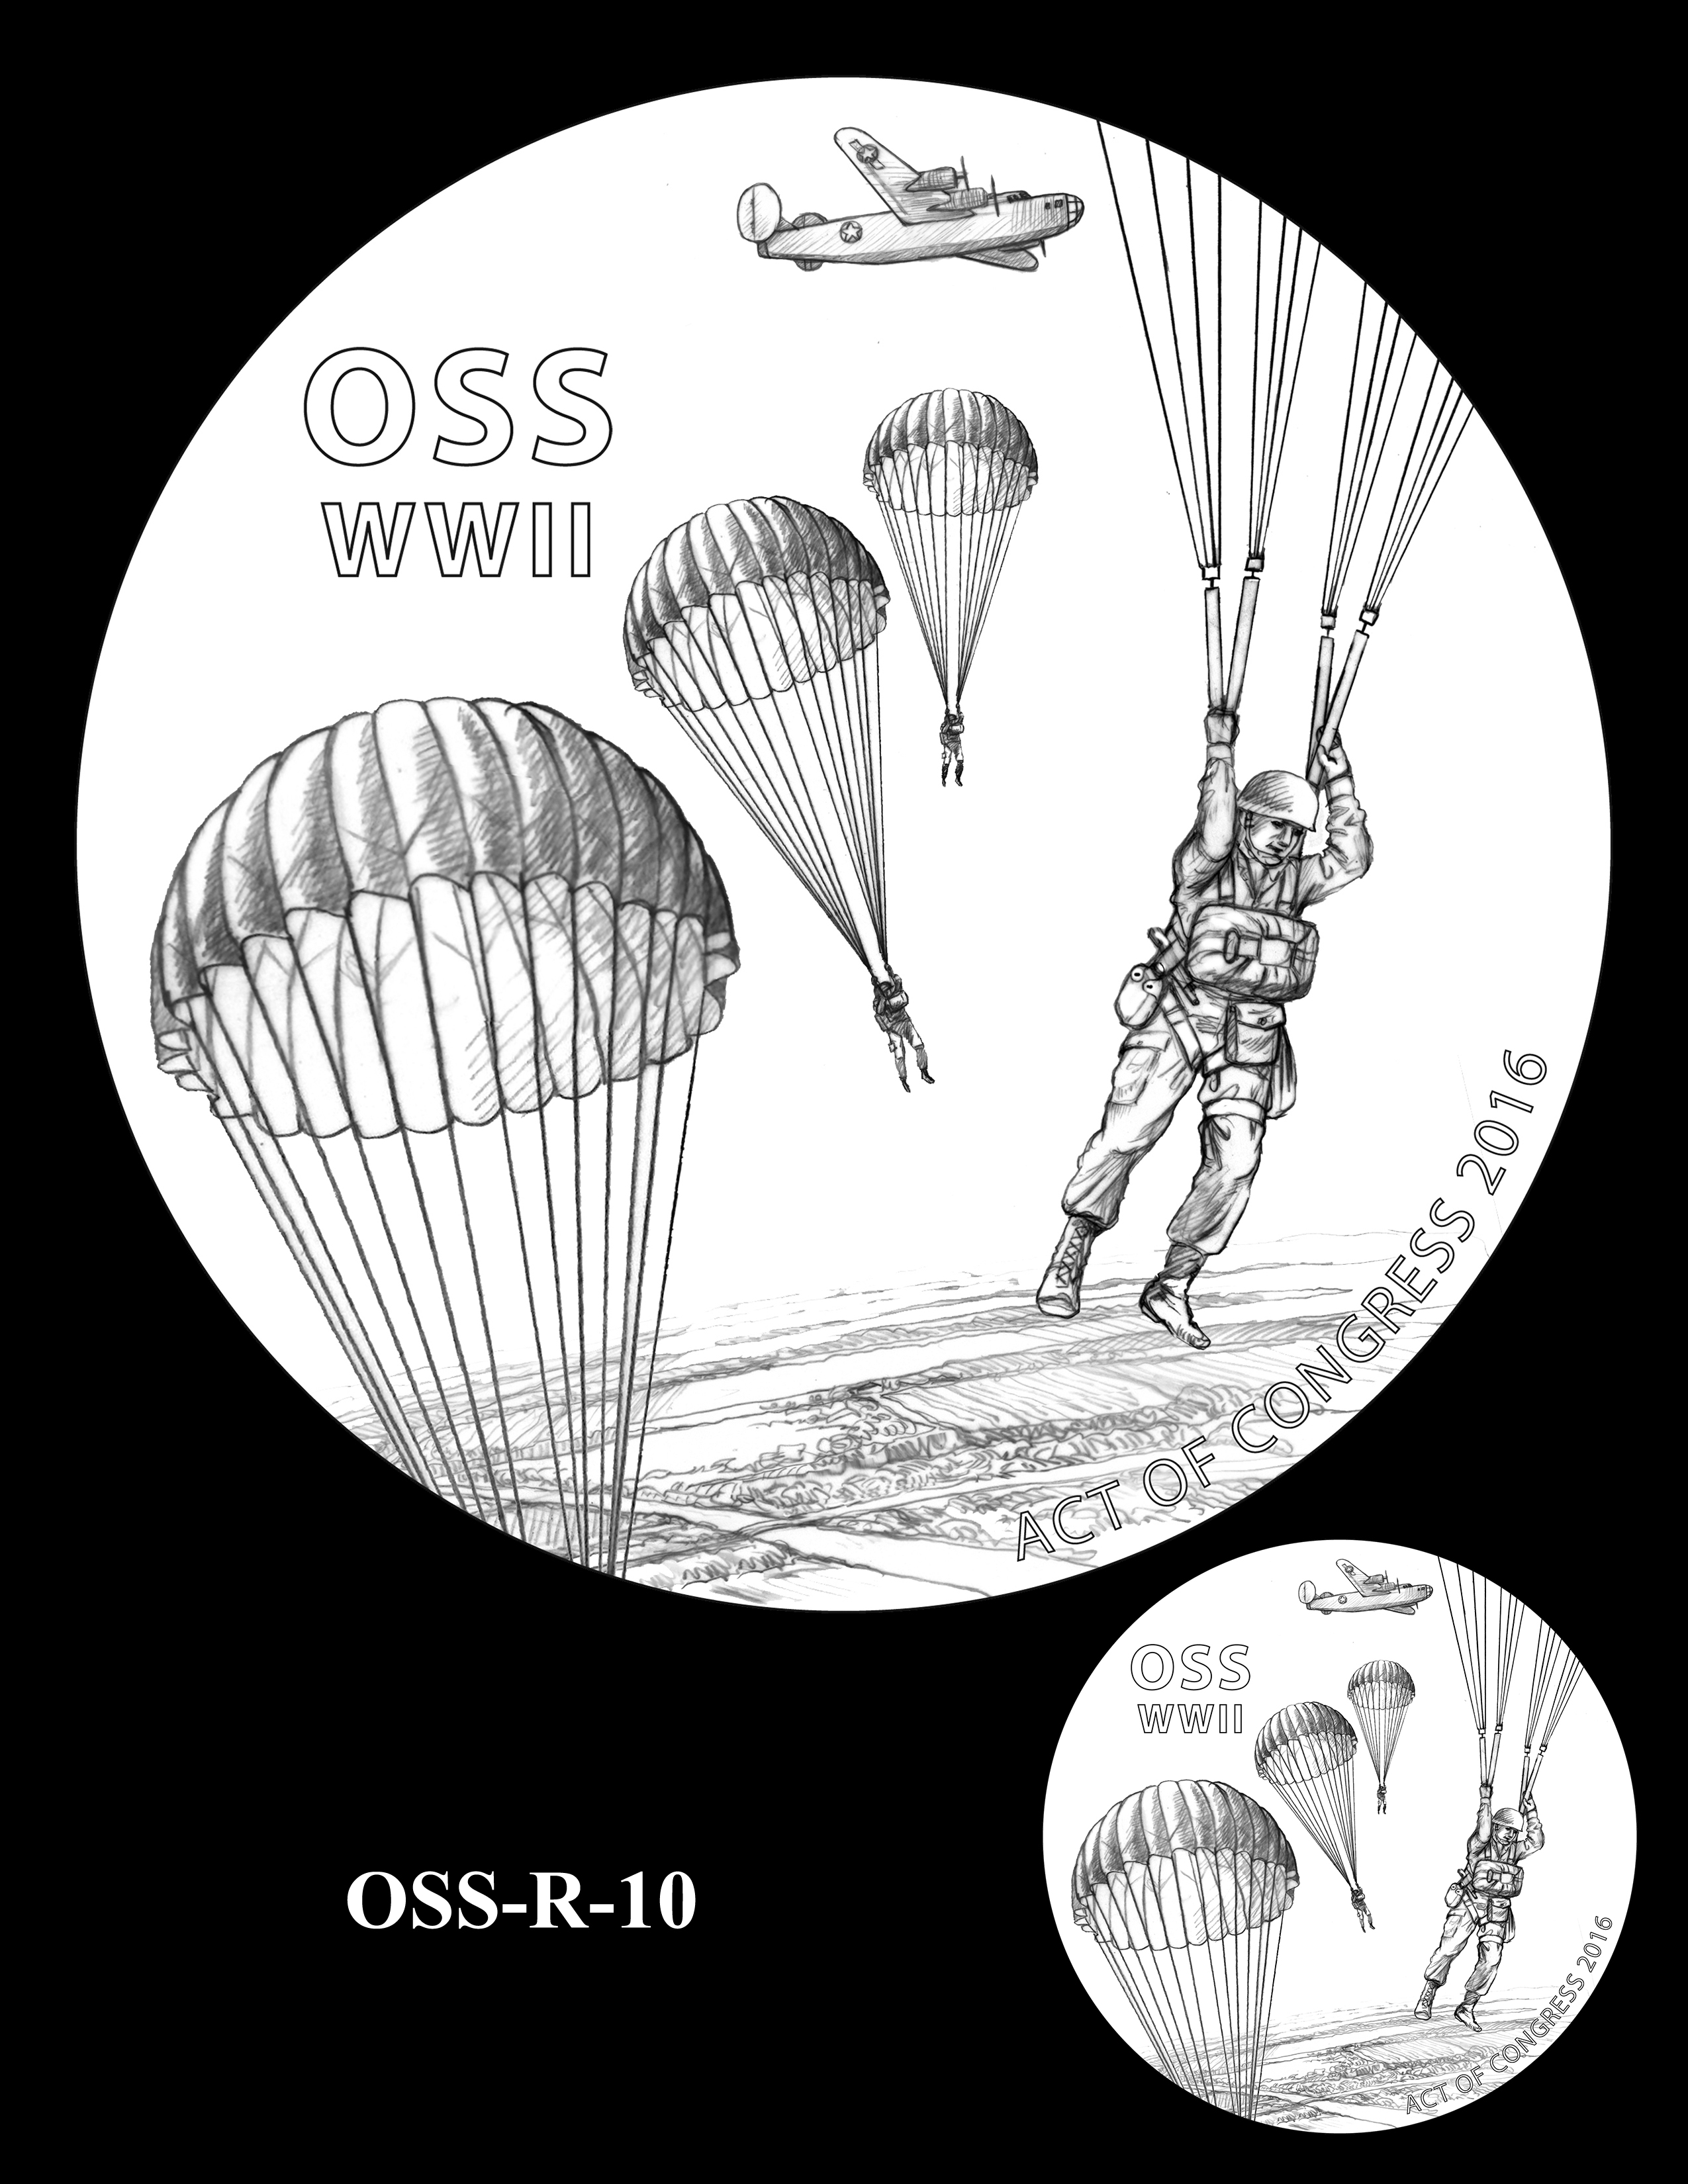 OSS-R-10 -- Office of Strategic Services Congressional Gold Medal